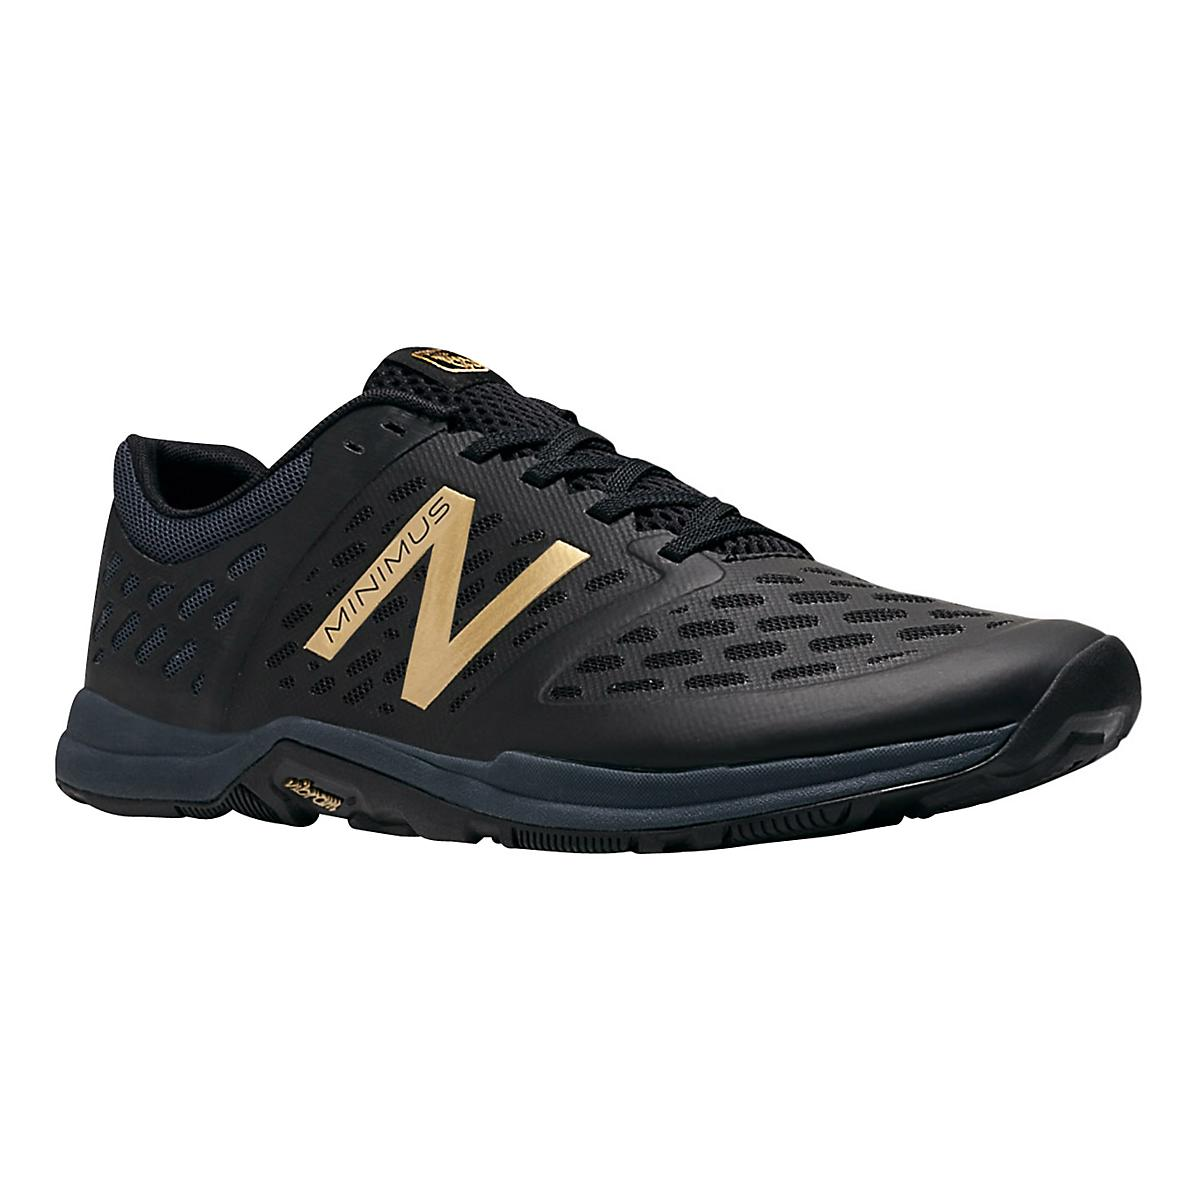 be074e236a487 Men s New Balance Minimus 20v4 Trainer Cross Training Shoe at Road Runner  Sports